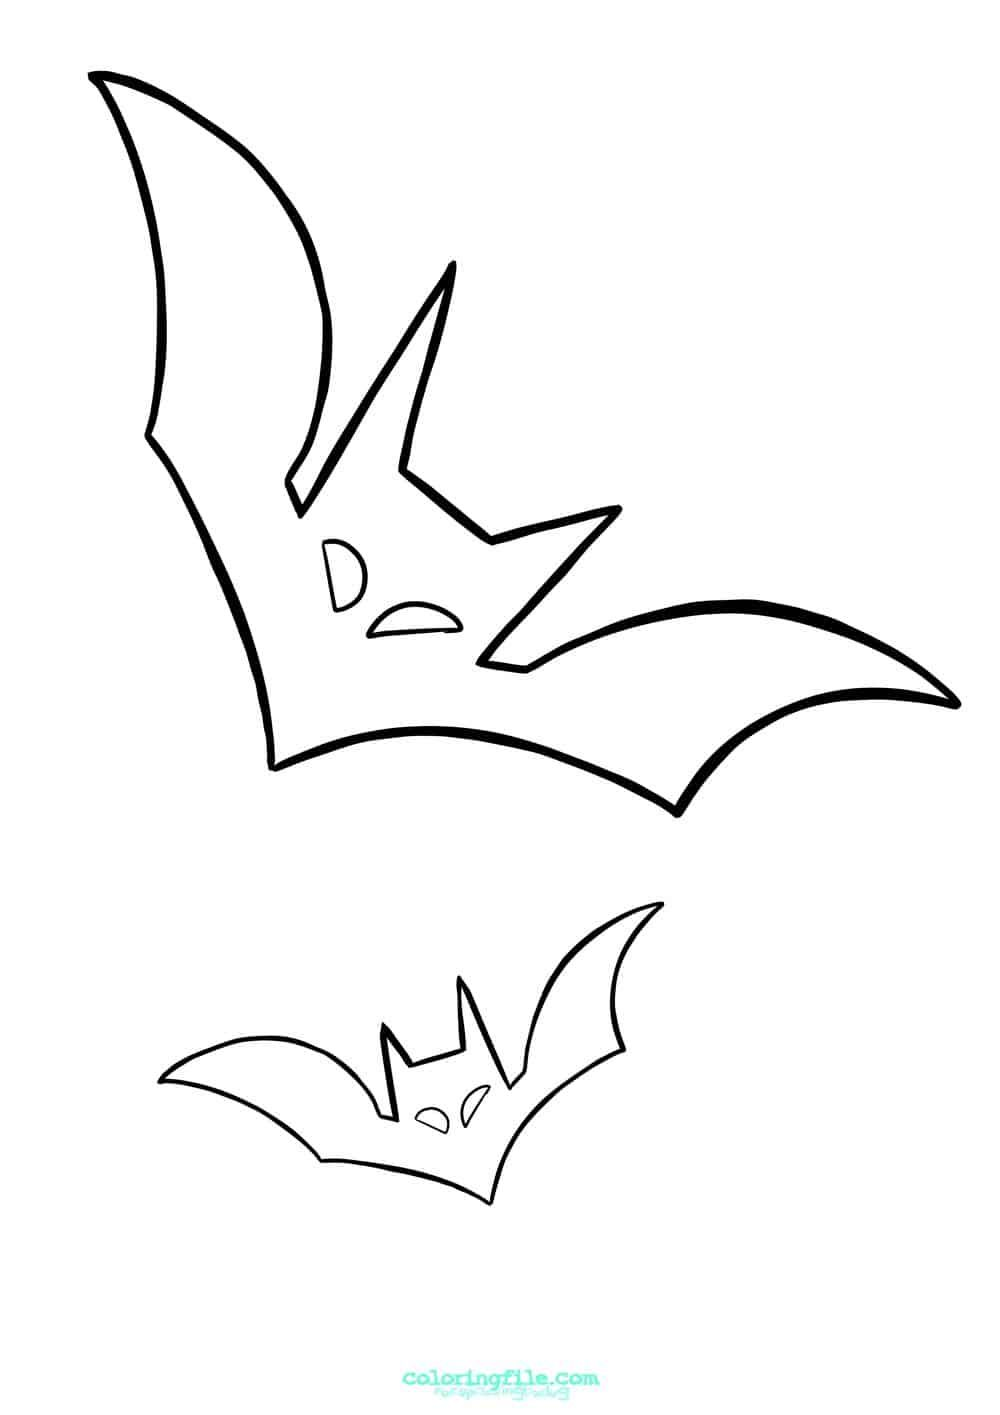 Halloween Two Bat Coloring Pages From 100 Halloween Coloring